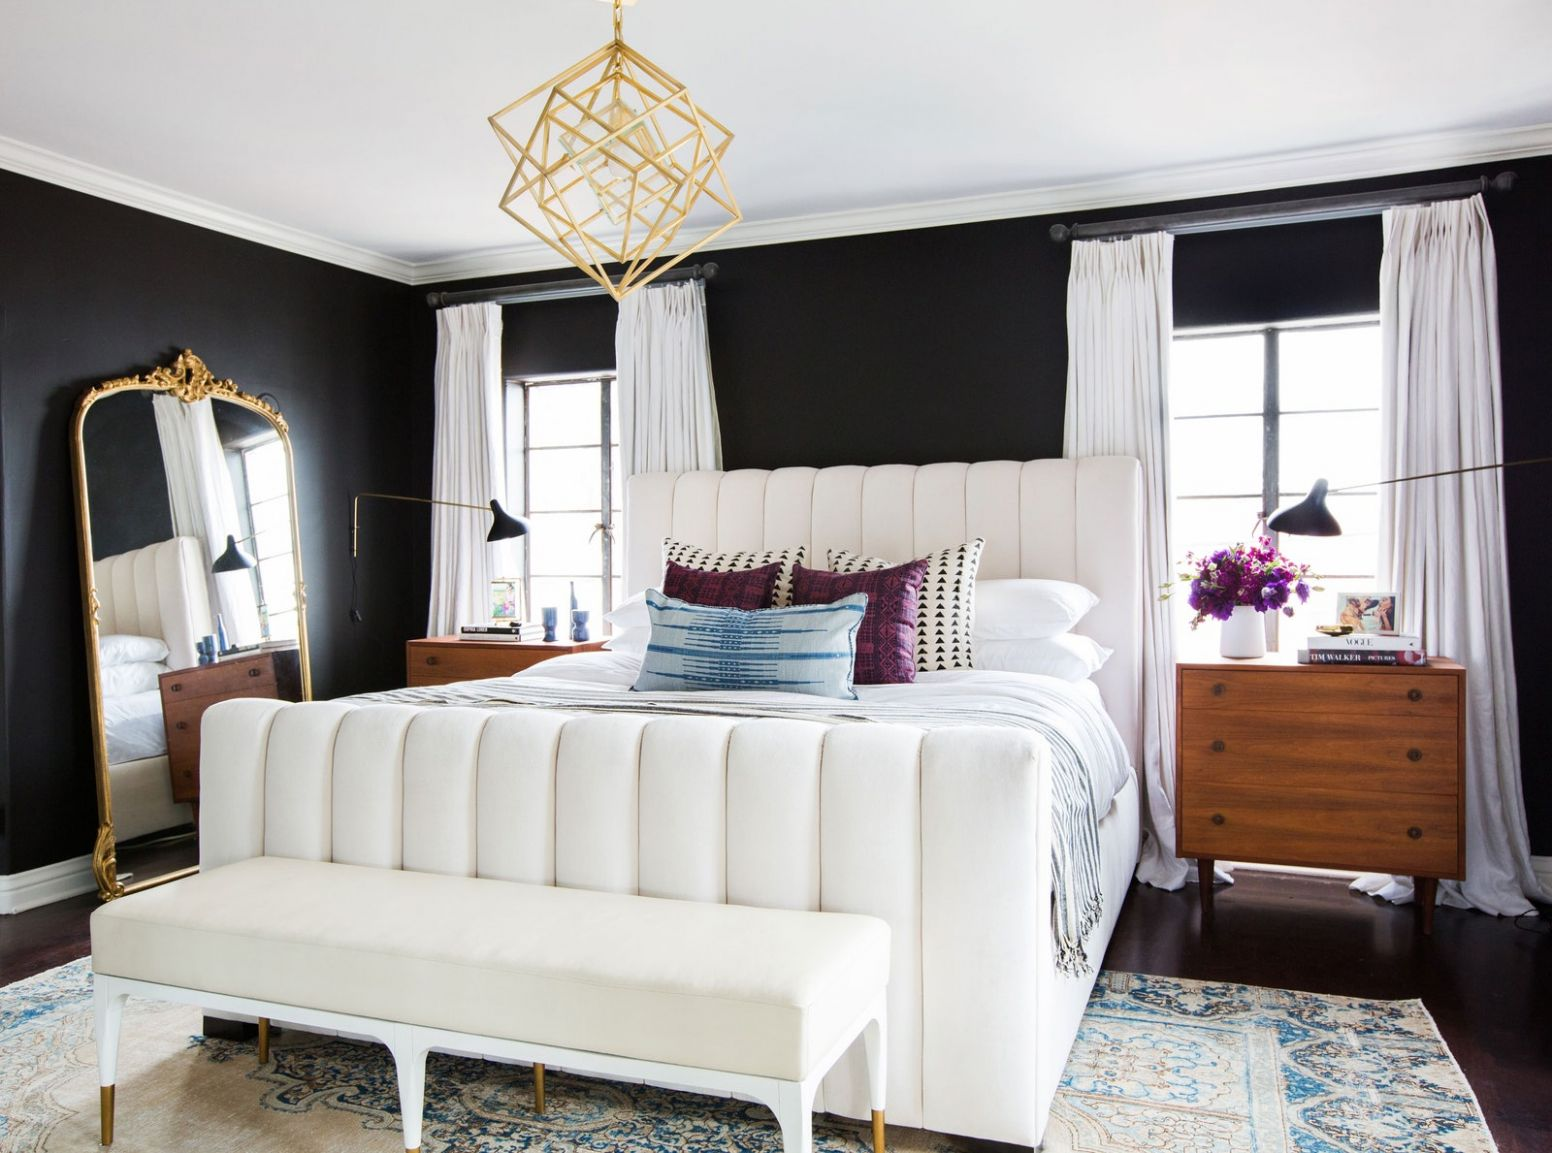 8 Master Bedroom Decorating Ideas and Design Inspiration ..